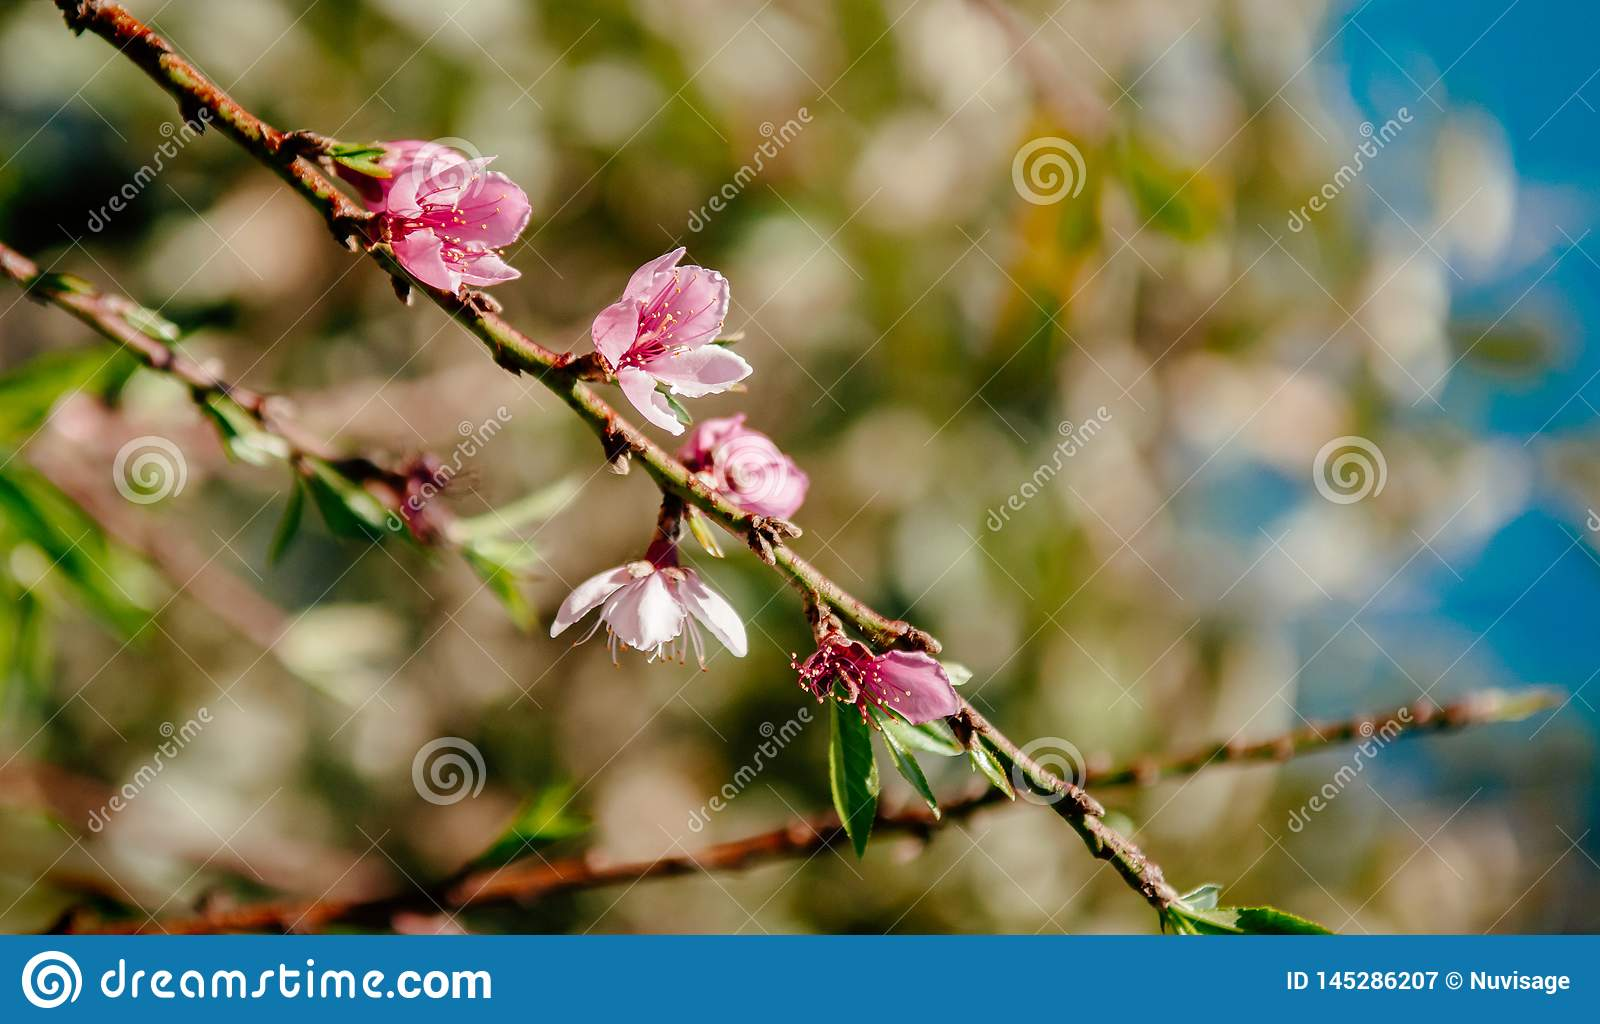 Fresh cherry blossom on its branch in spring season